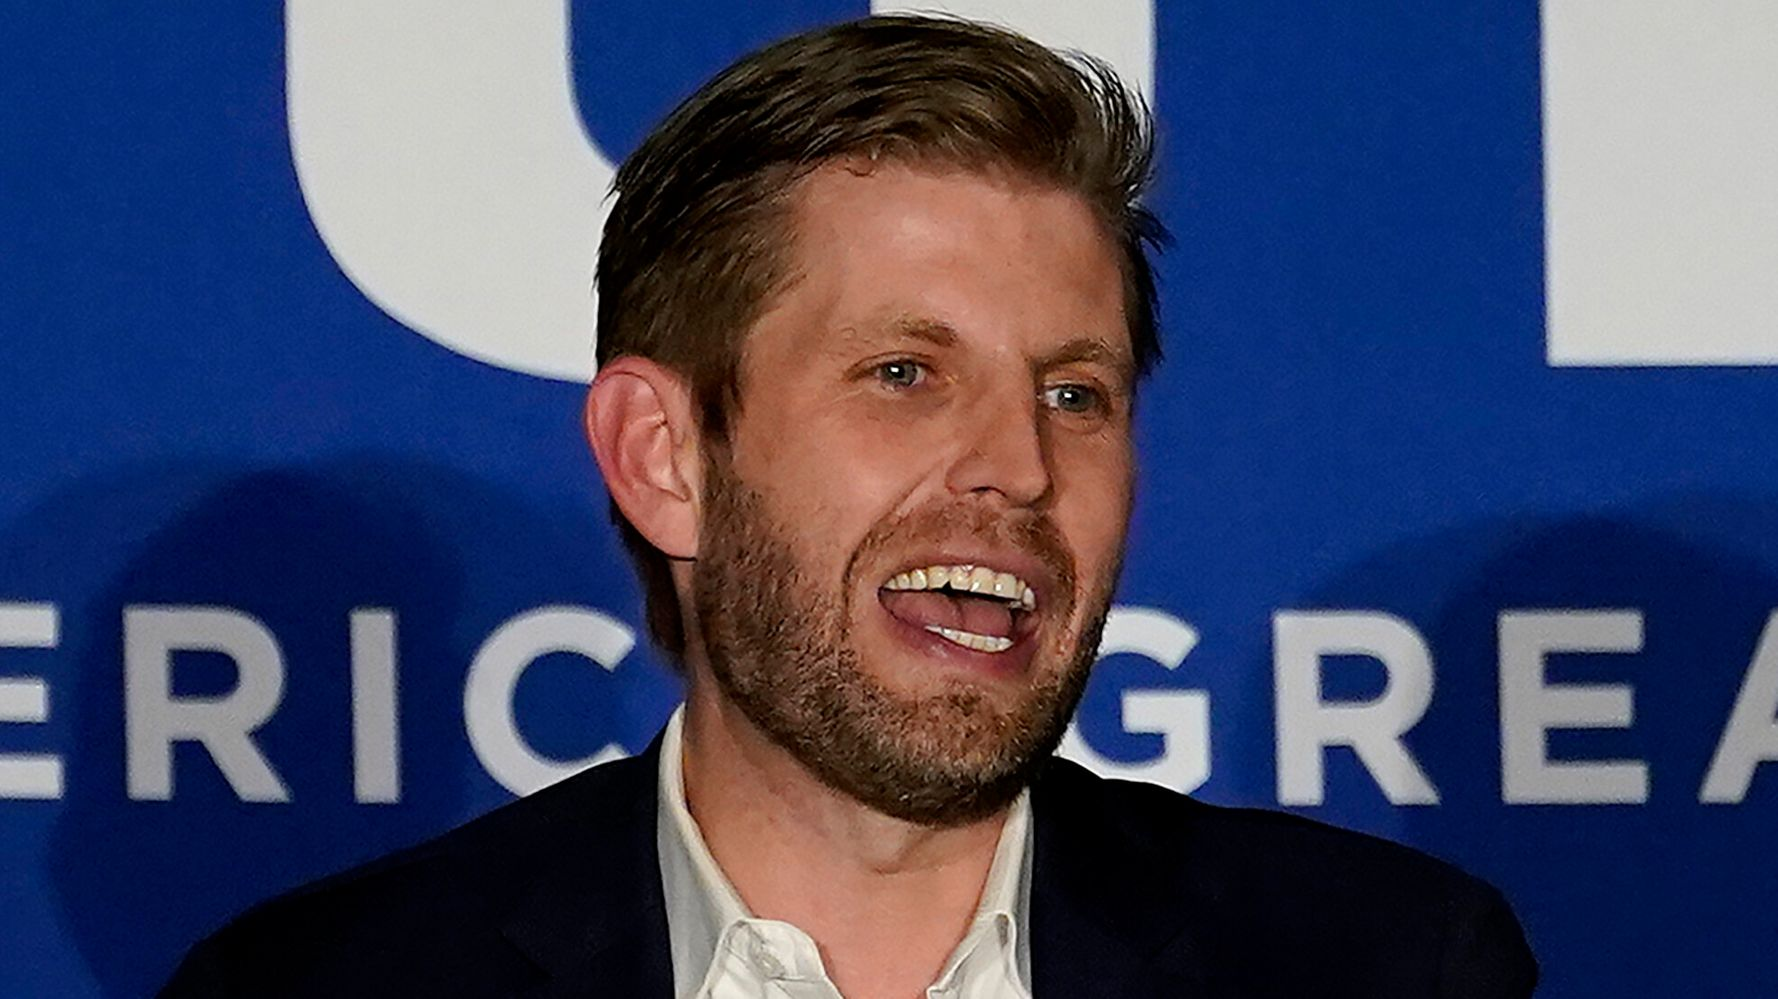 Eric Trump's Latest Attempt To Spread Disinformation Backfires Like All The Rest